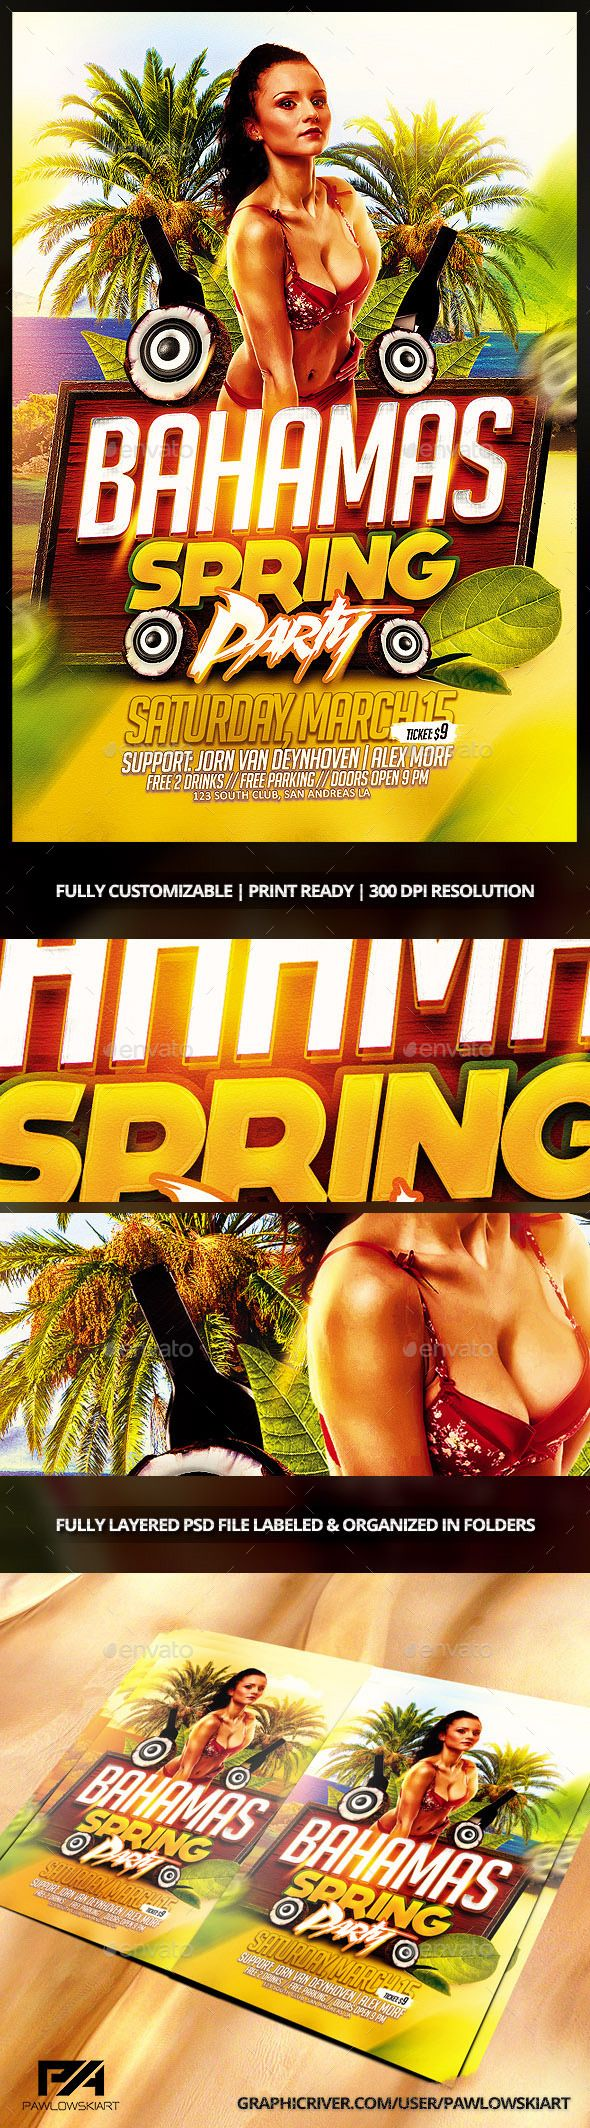 Bahamas Spring Party Flyer Template  Party Flyer Flyer Template